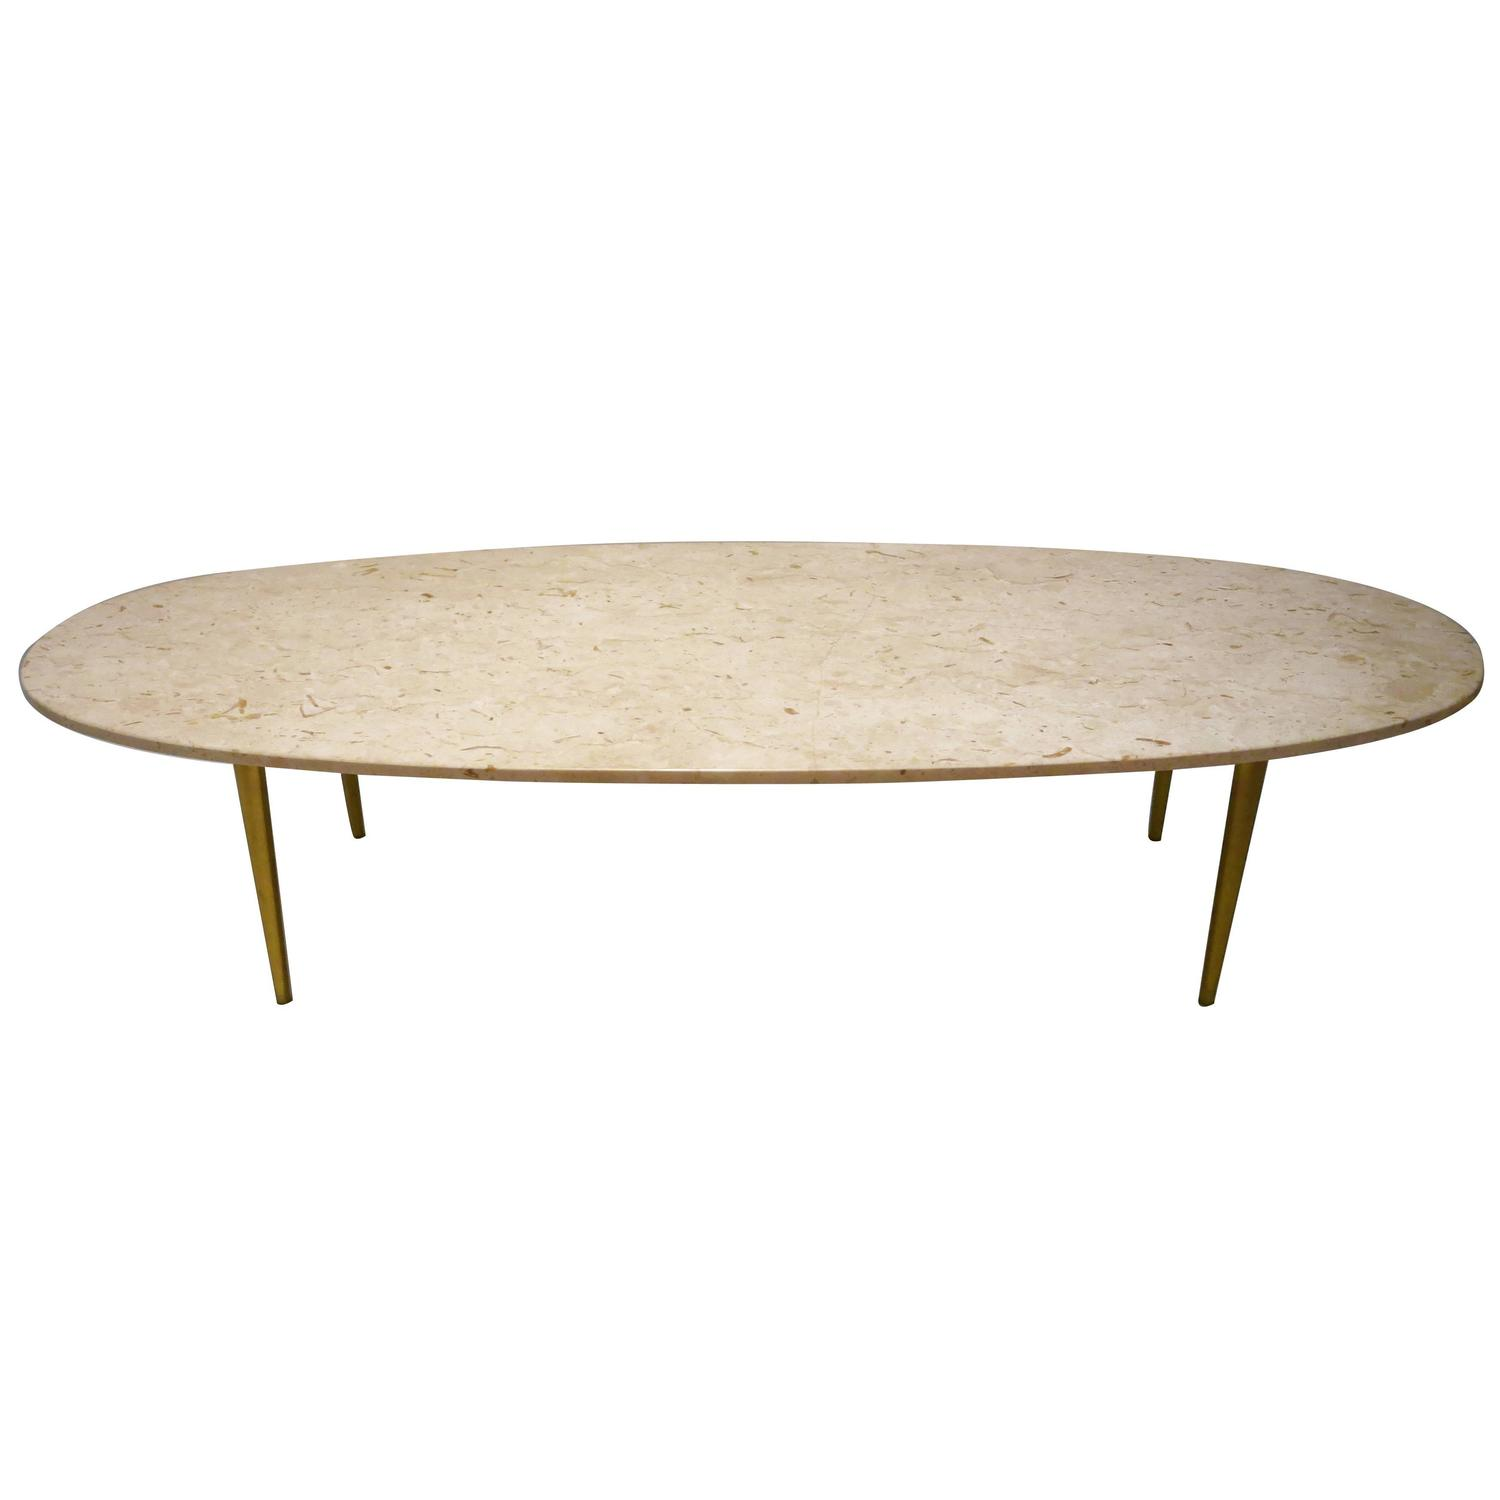 Mid century modern marble and brass large oval coffee table at 1stdibs Mid century coffee tables